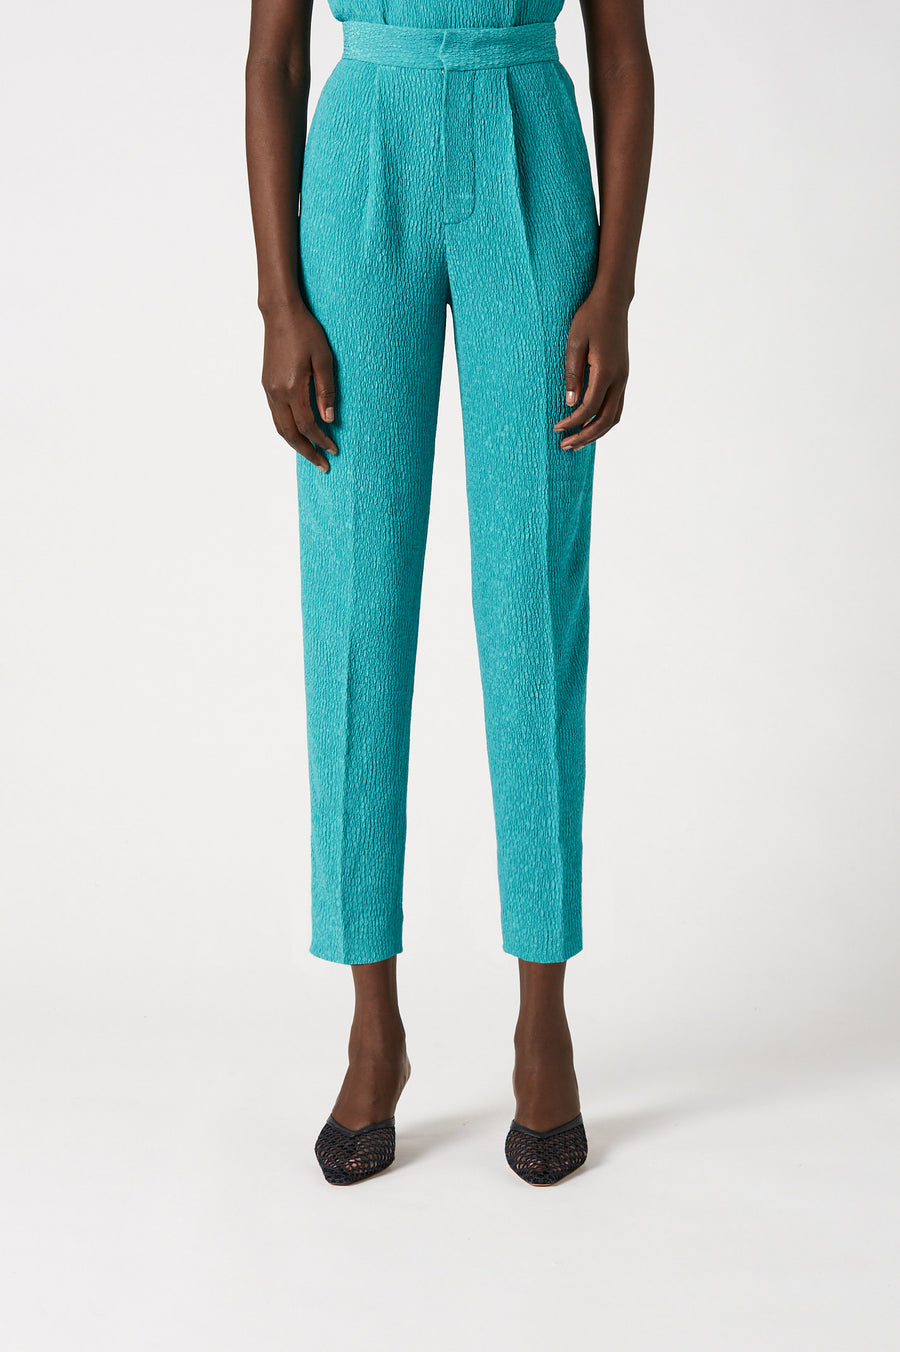 Embrace soft tailoring and modern textures with our Stretch Reptile Pleat Pant.